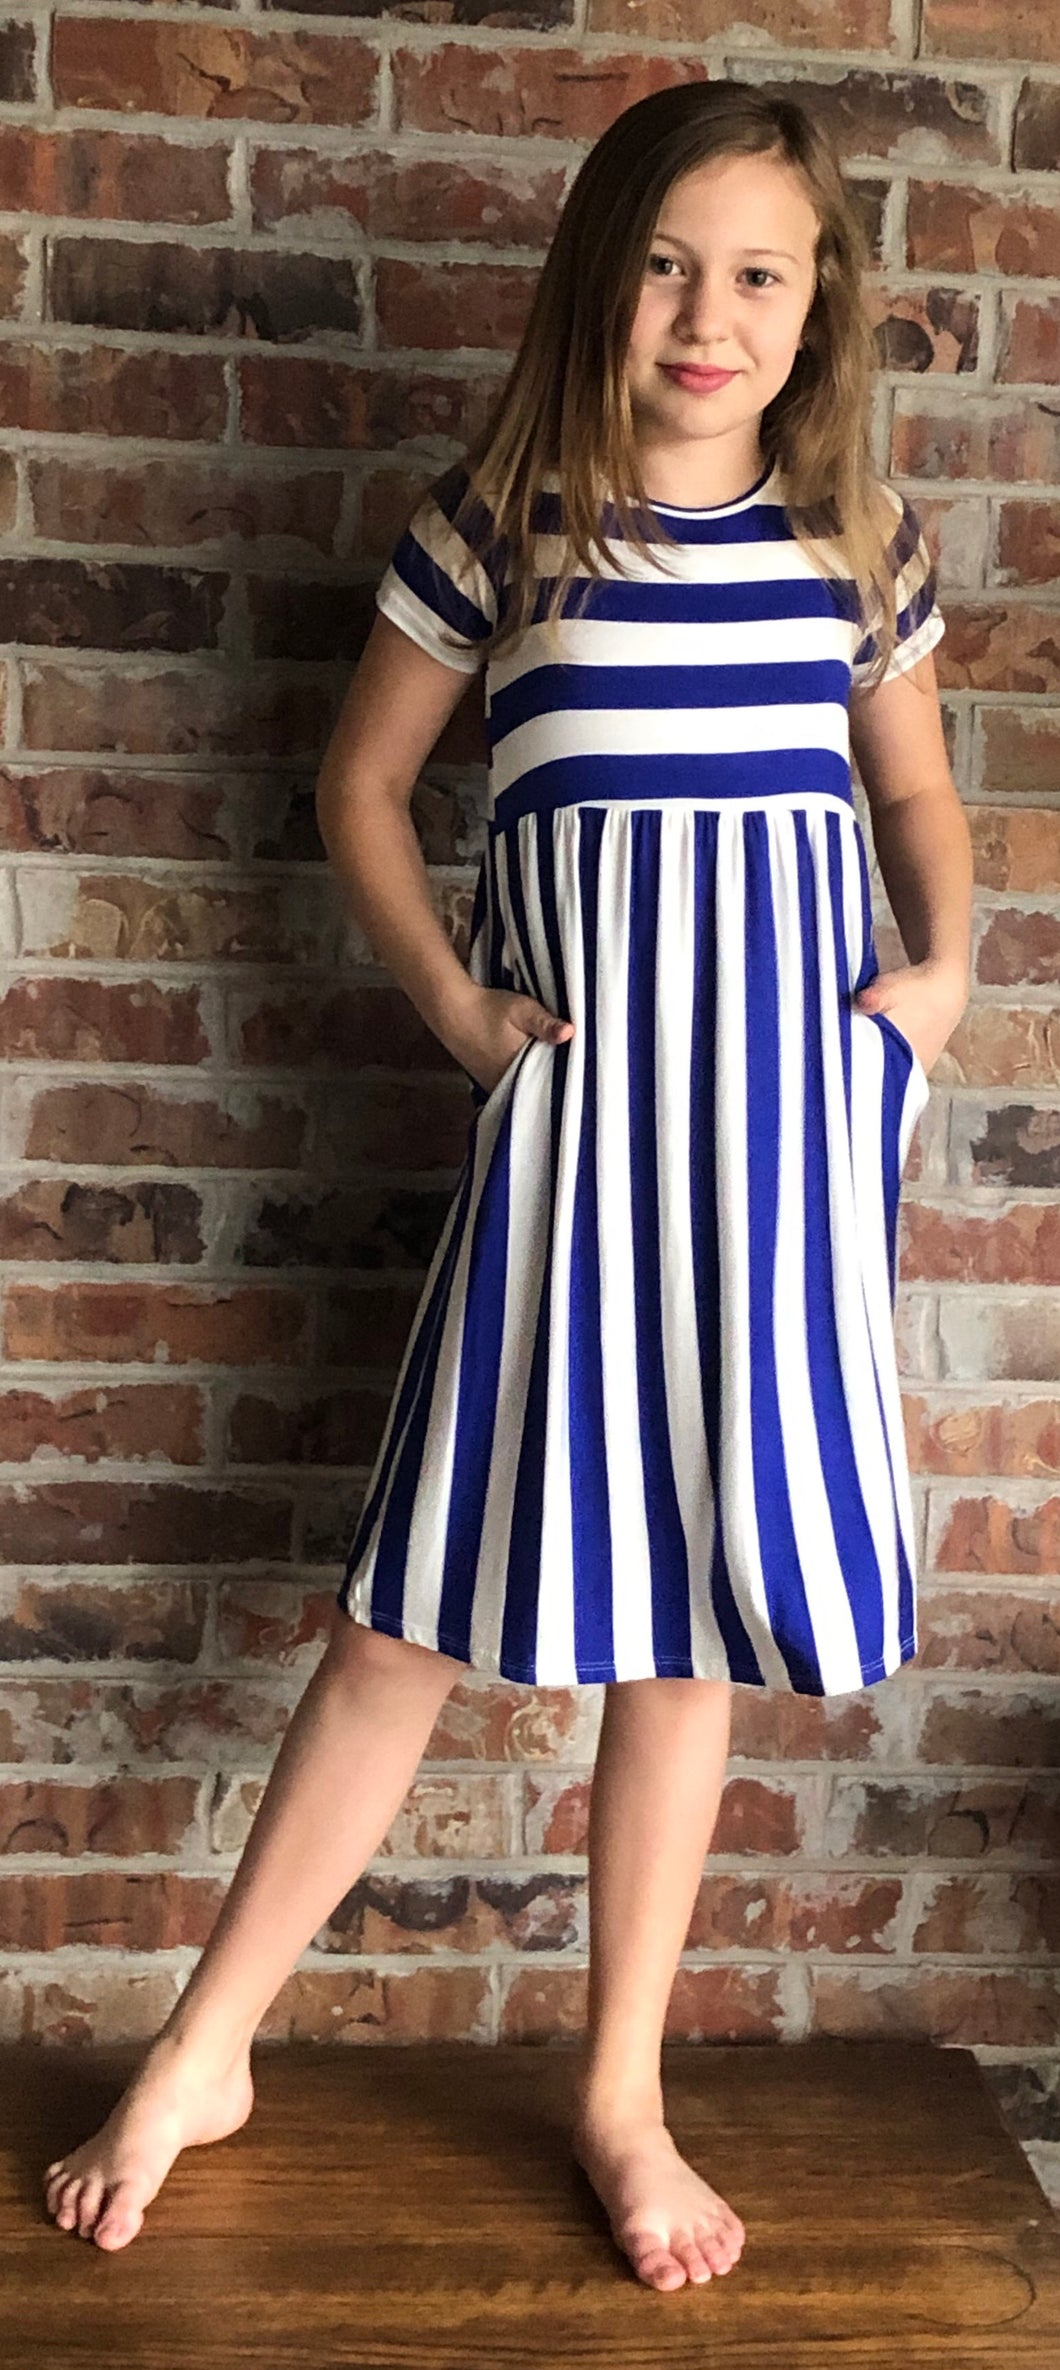 Royal Blue and White Striped Dress